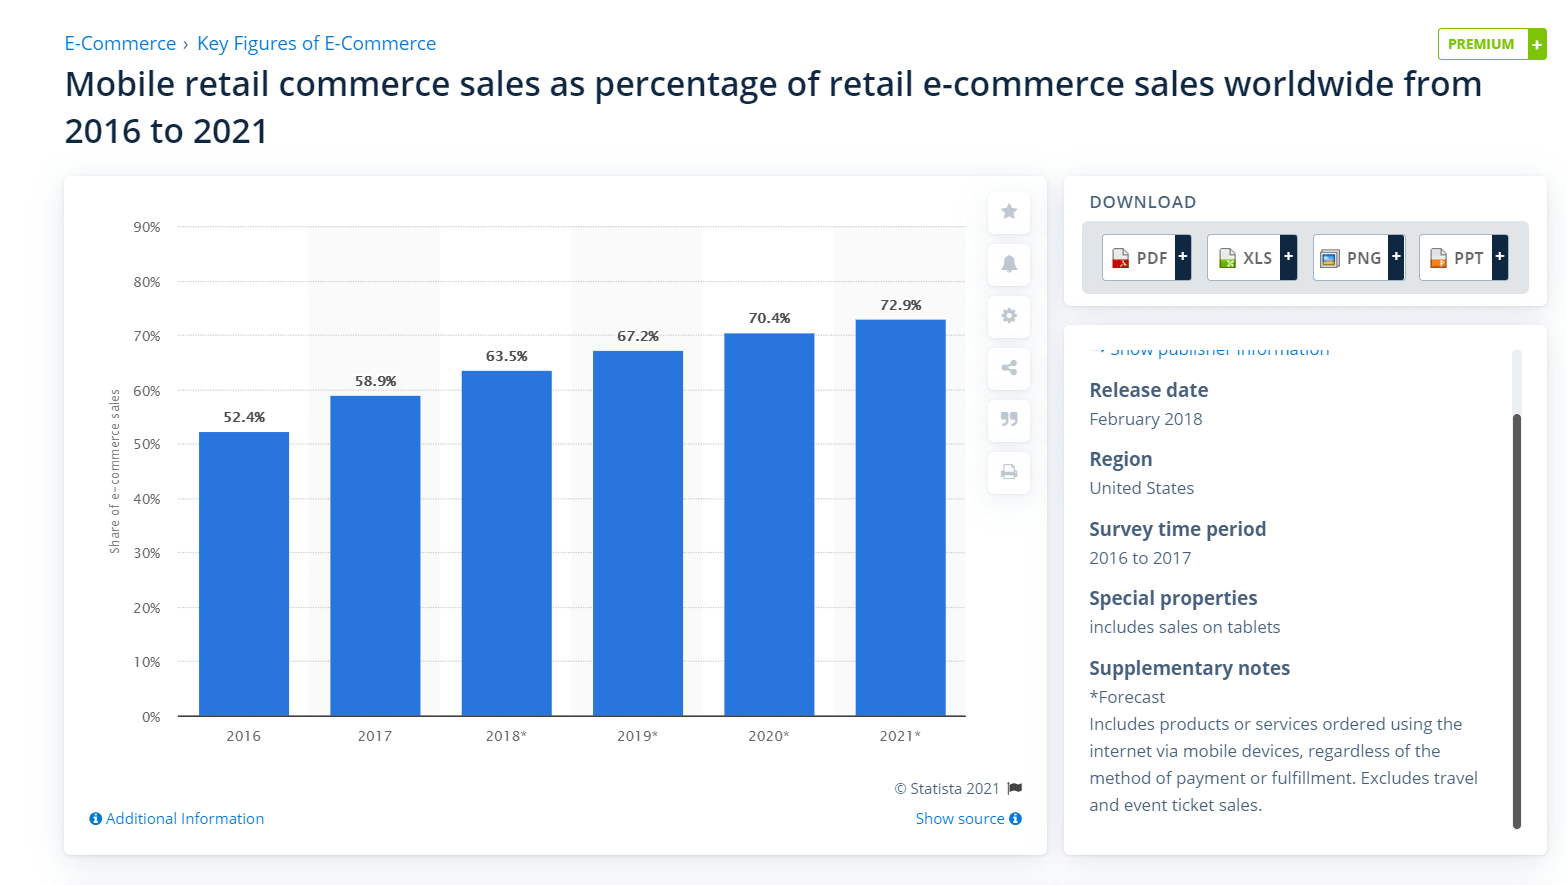 share of e-commerce in whole structure of global online retail in 2021